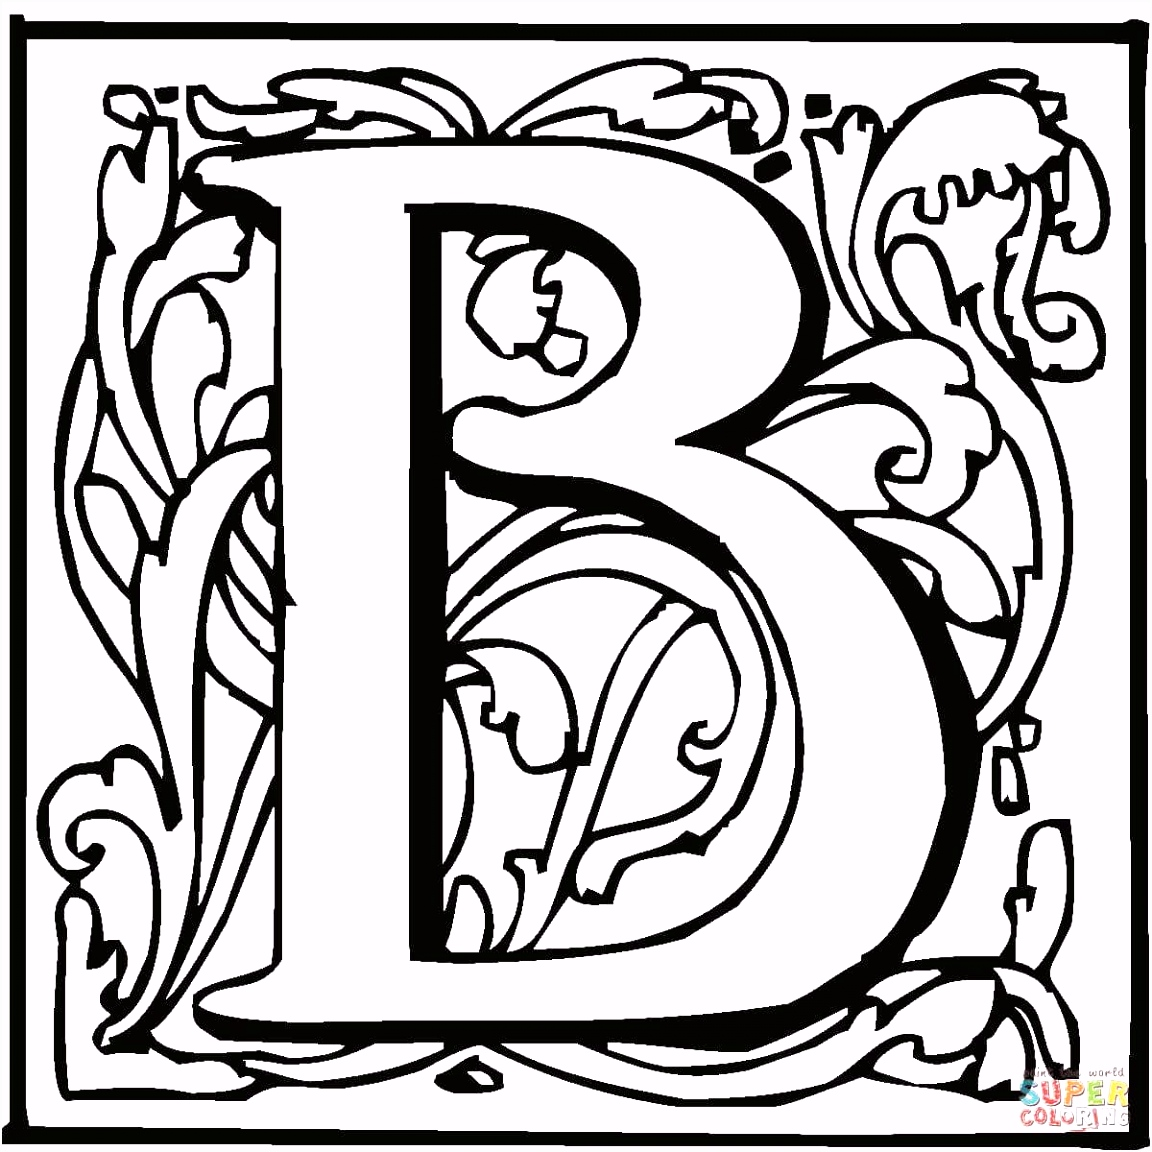 Verzoekje Kleurplaten Van Lillifee Letter B with ornament Coloring Page From English Alphabet with X4yz83vnr8 Duuw0sblgs